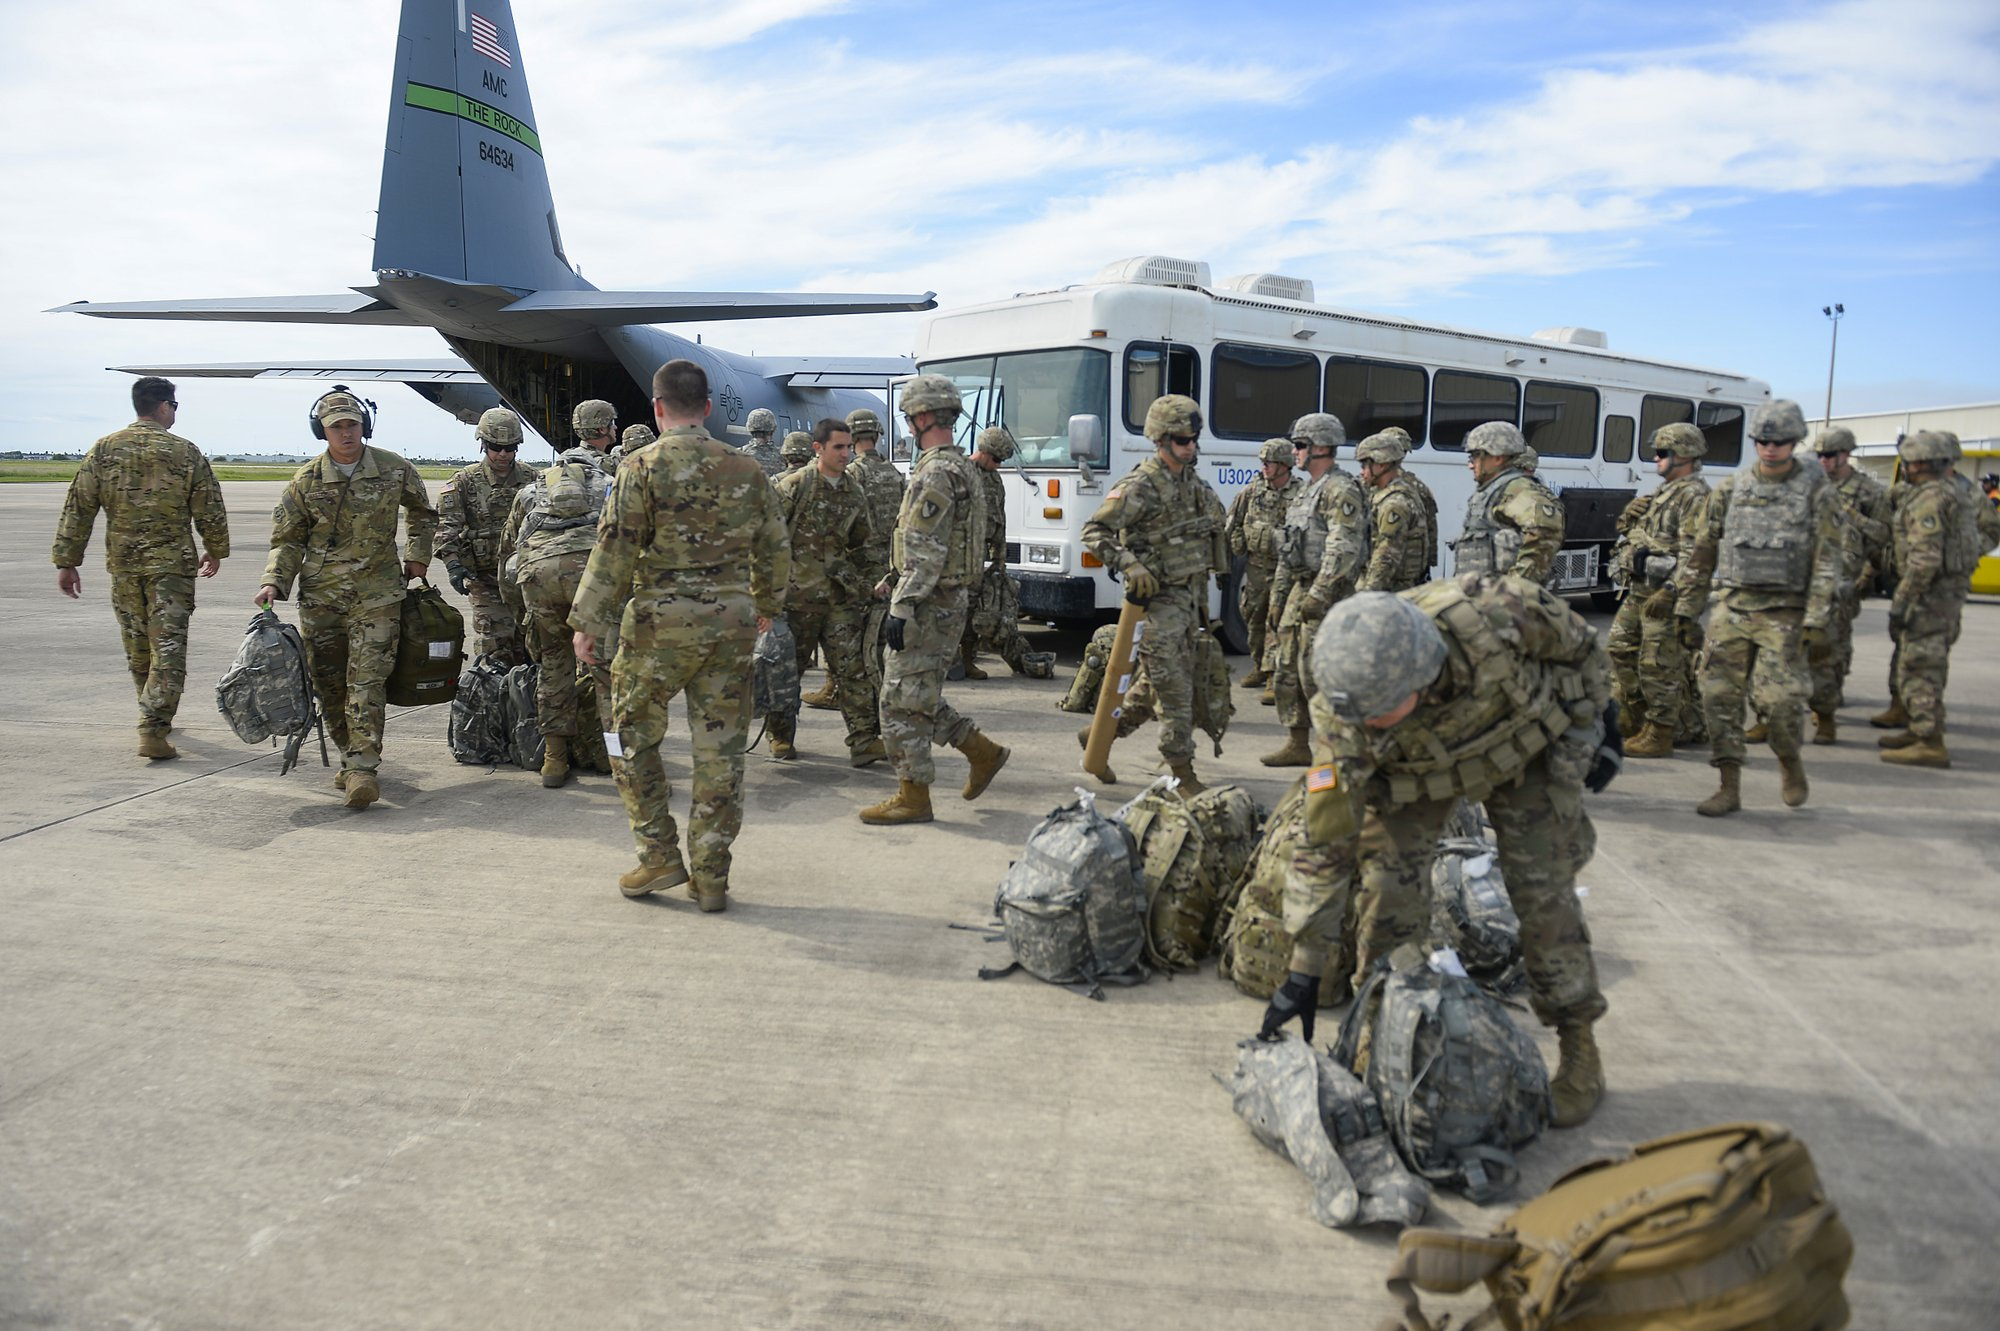 In this photo provided by the US Air Force, soldiers from the the 89th Military Police Brigade, and 41st Engineering Company, 19th Engineering Battalion, Fort Riley, Kan., arrive at Valley International Airport, Thursday, Nov. 1, 2018, in Harlingen, Texas, to conduct the first missions along the southern border in support of Operation Faithful Patriot. Photo: AP